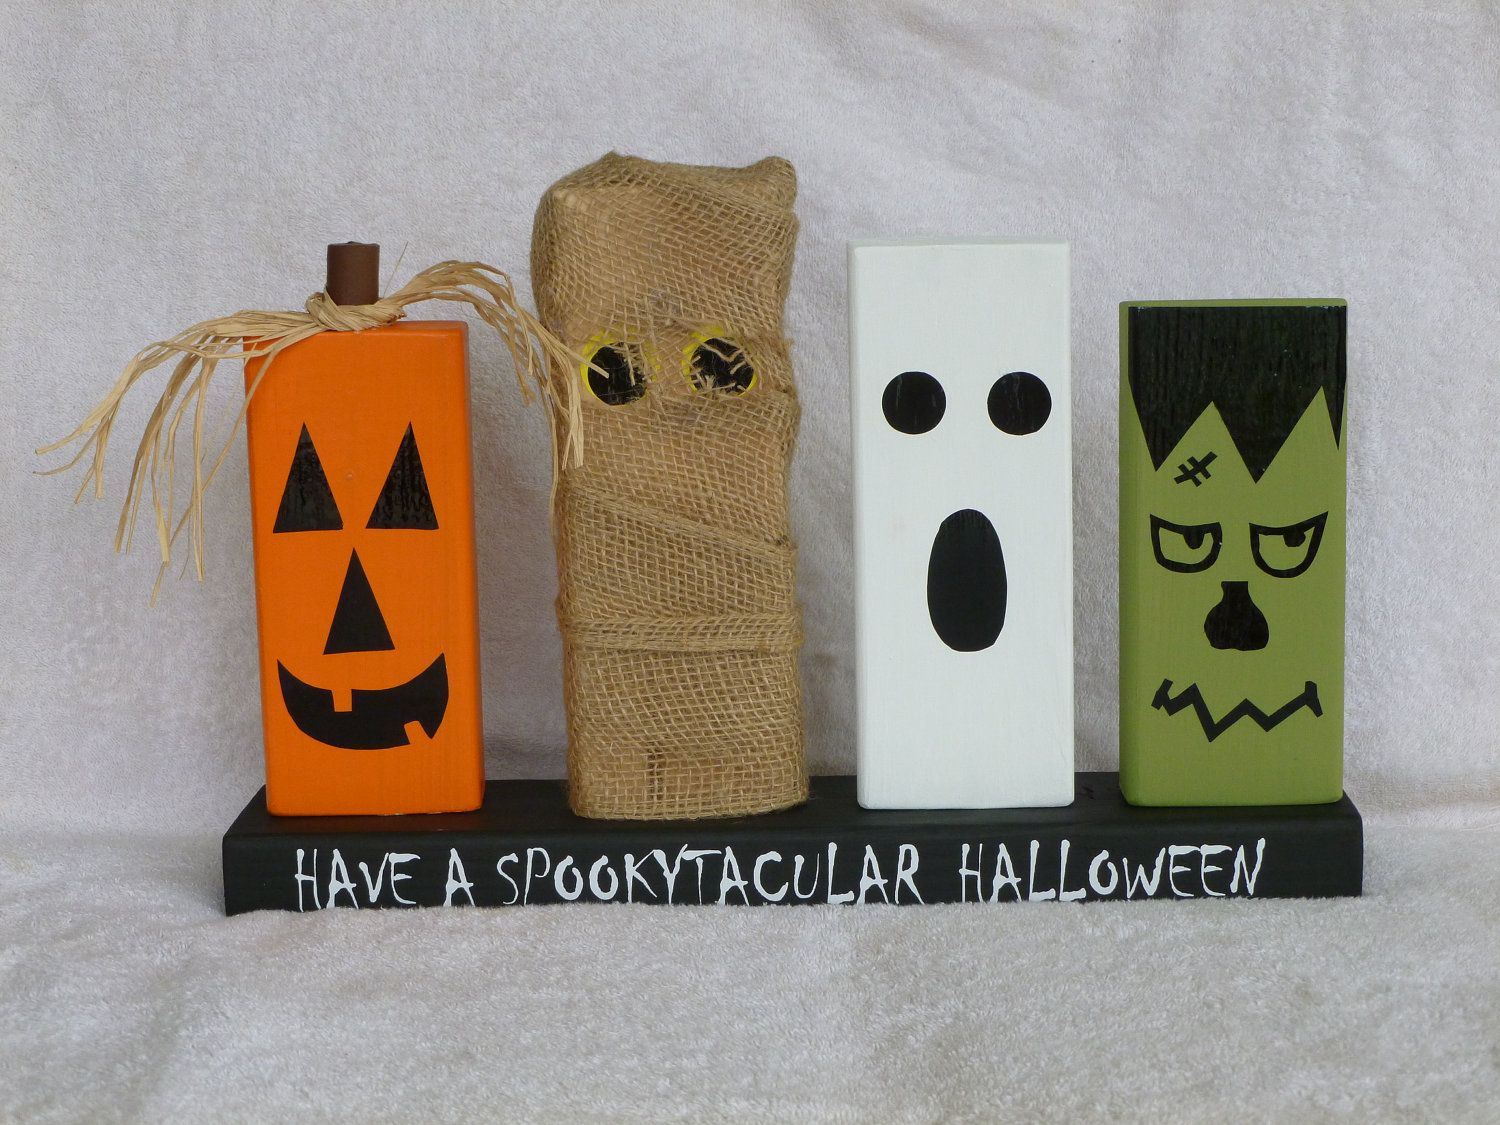 Exceptional Wood Block Halloween Decoration With Pumpkin, Mummy, Ghost, And Frankenstein